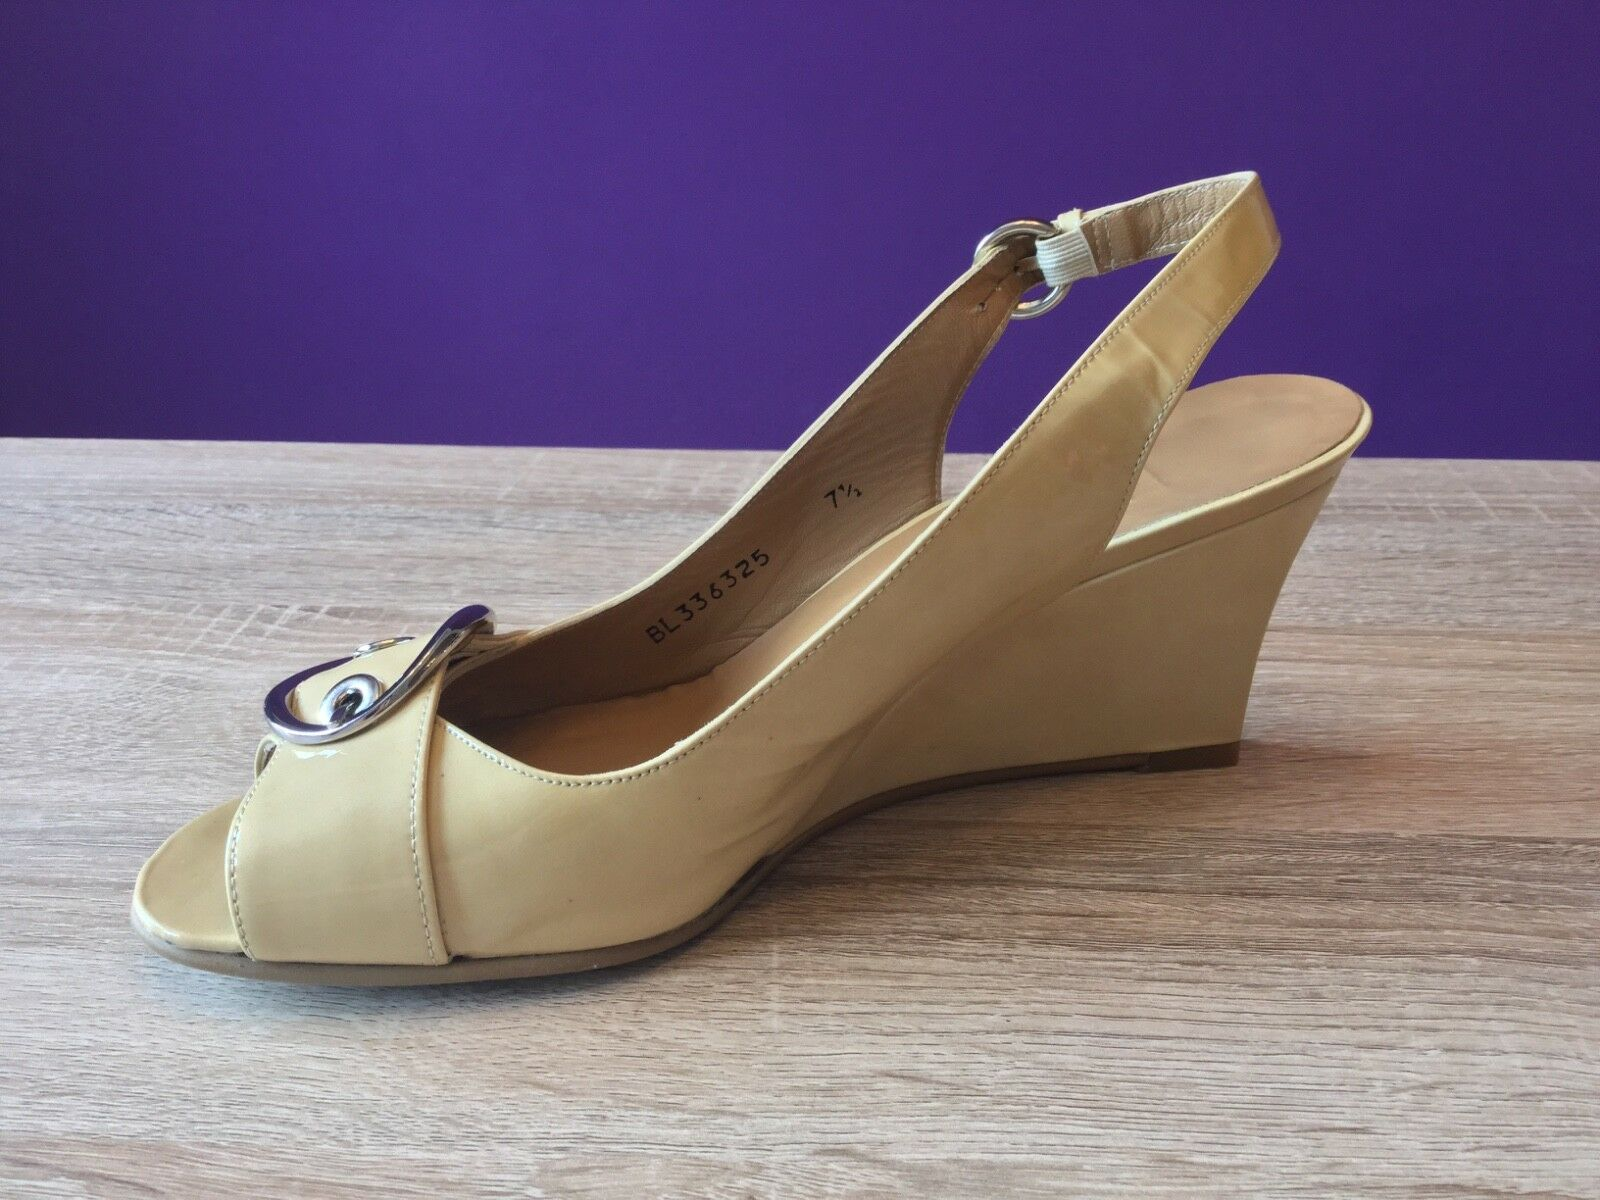 Stuart Weitzman For Russell & Bromley Sandales. Beige Patent Leder Wedge Sandales. Bromley UK 5.5 b89502